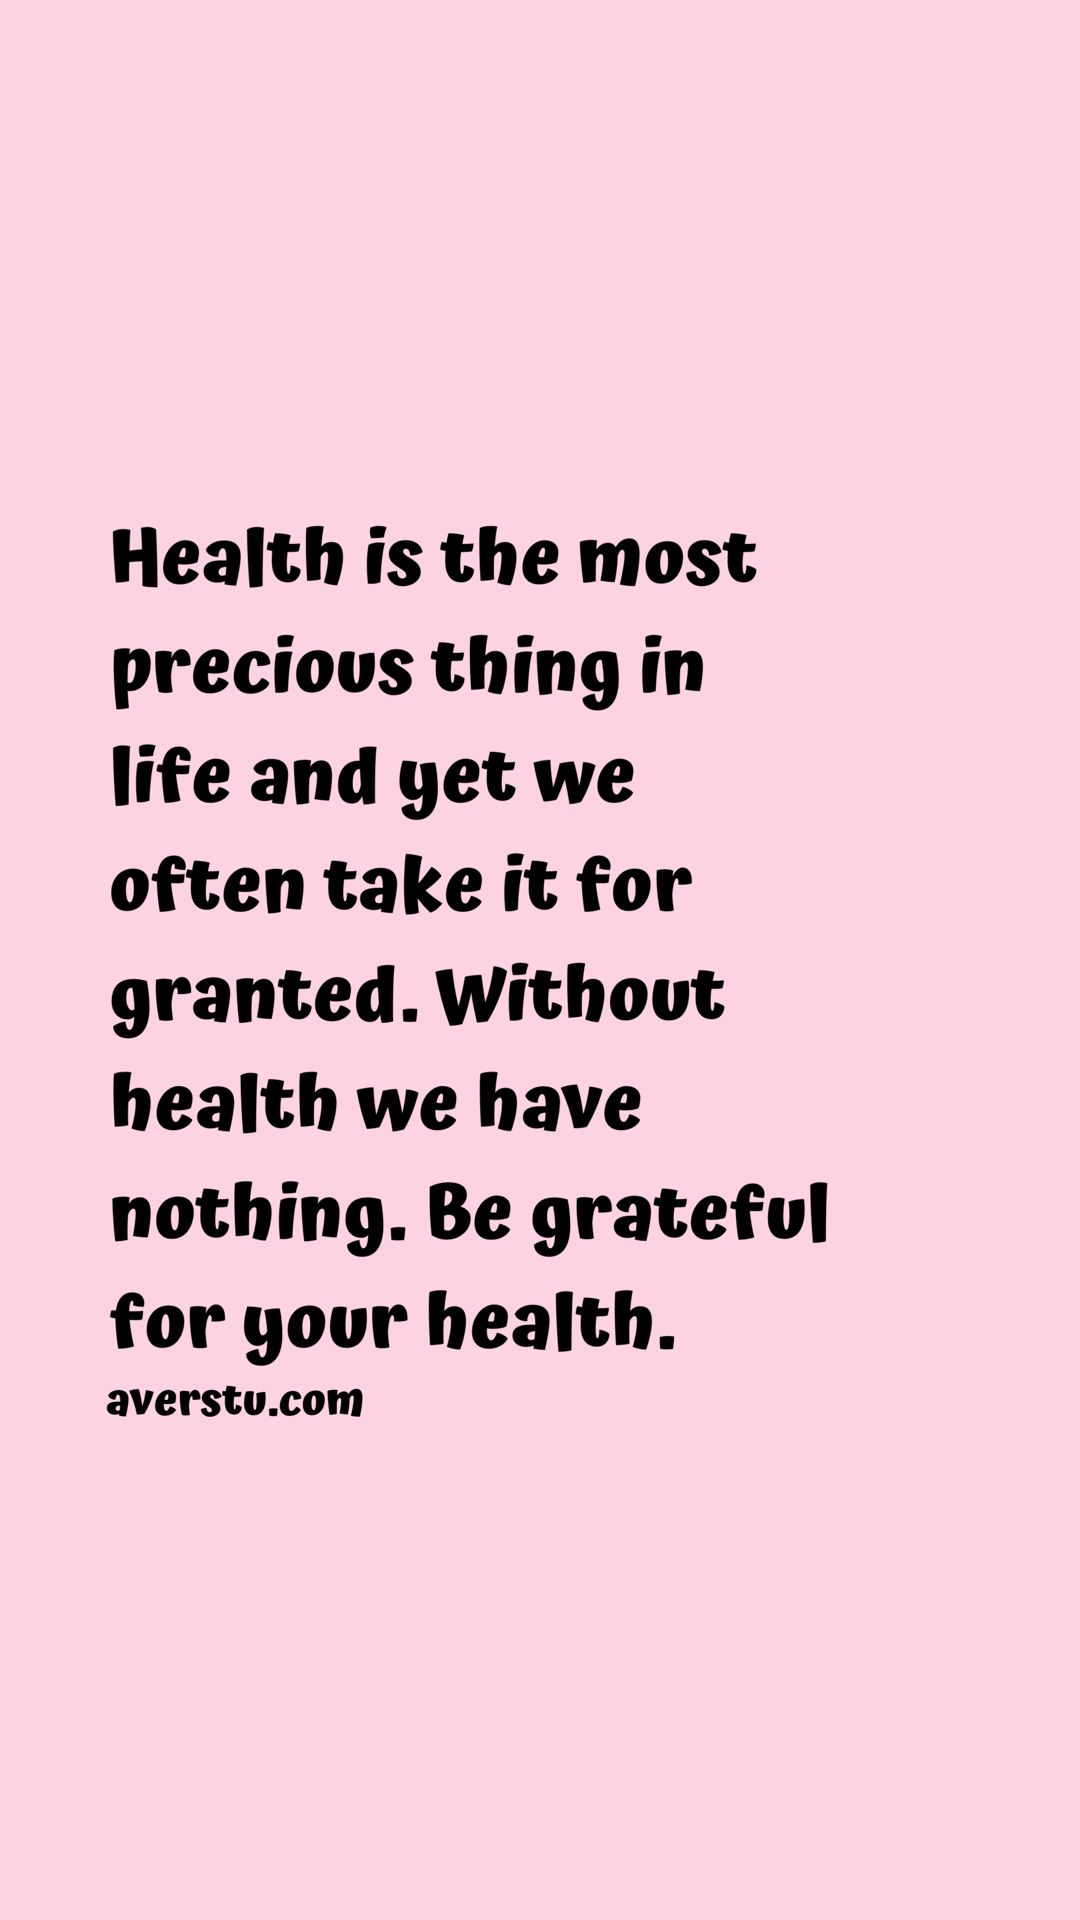 Grateful for health quotes